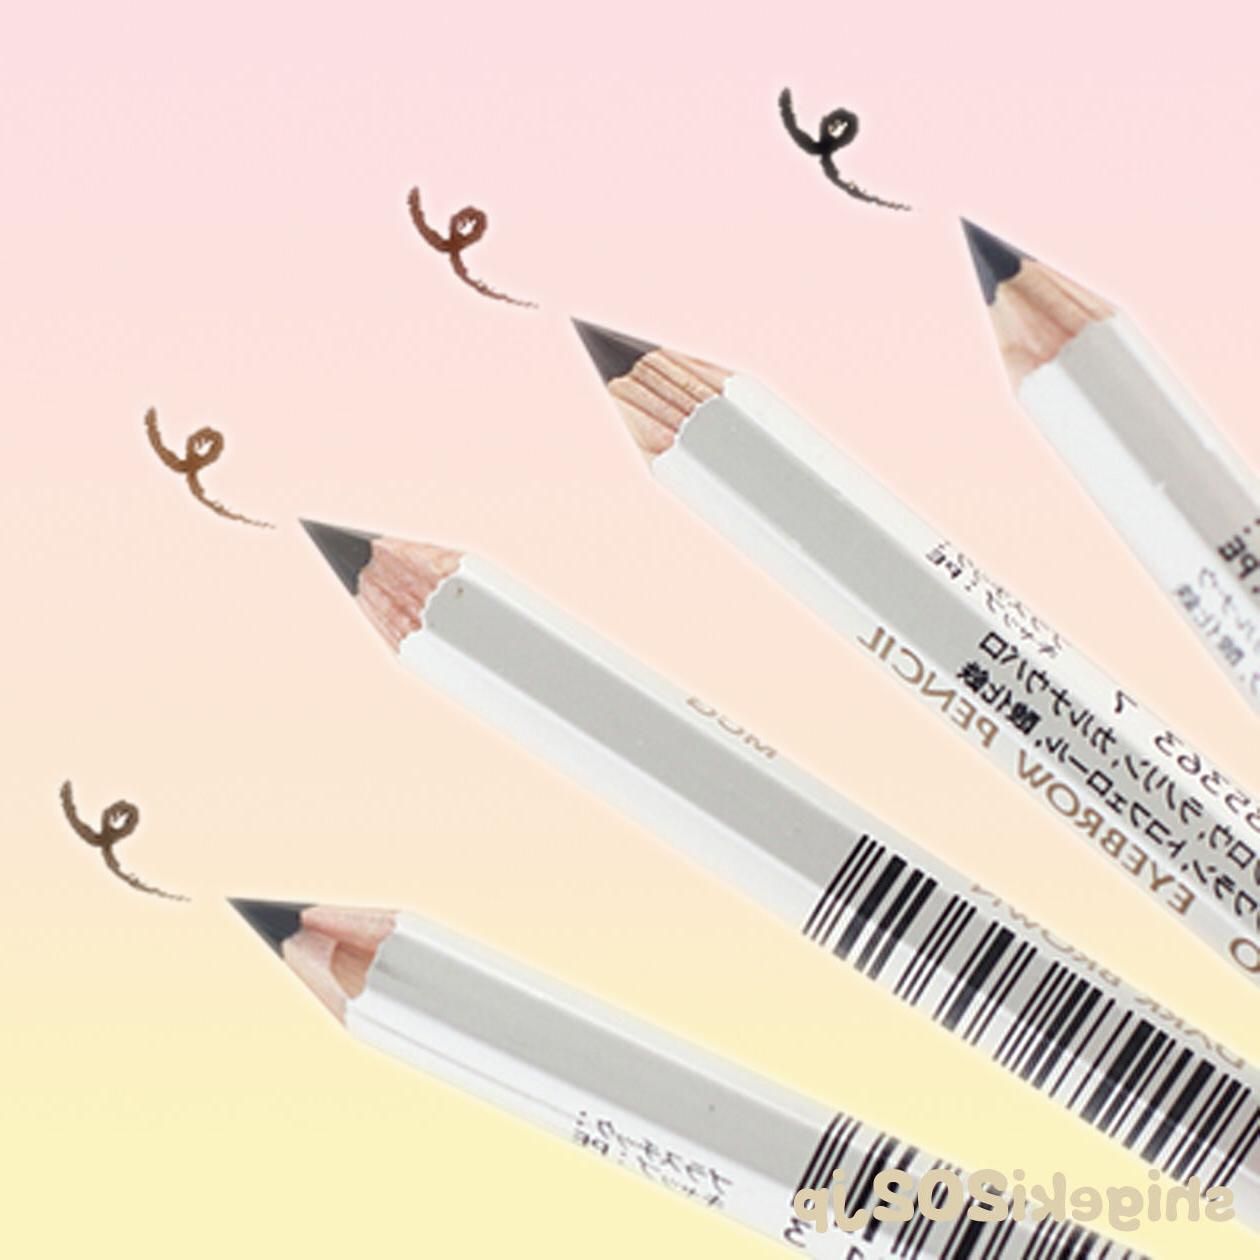 Shiseido Eyebrow Pencil Makeup Black Brown / Gray